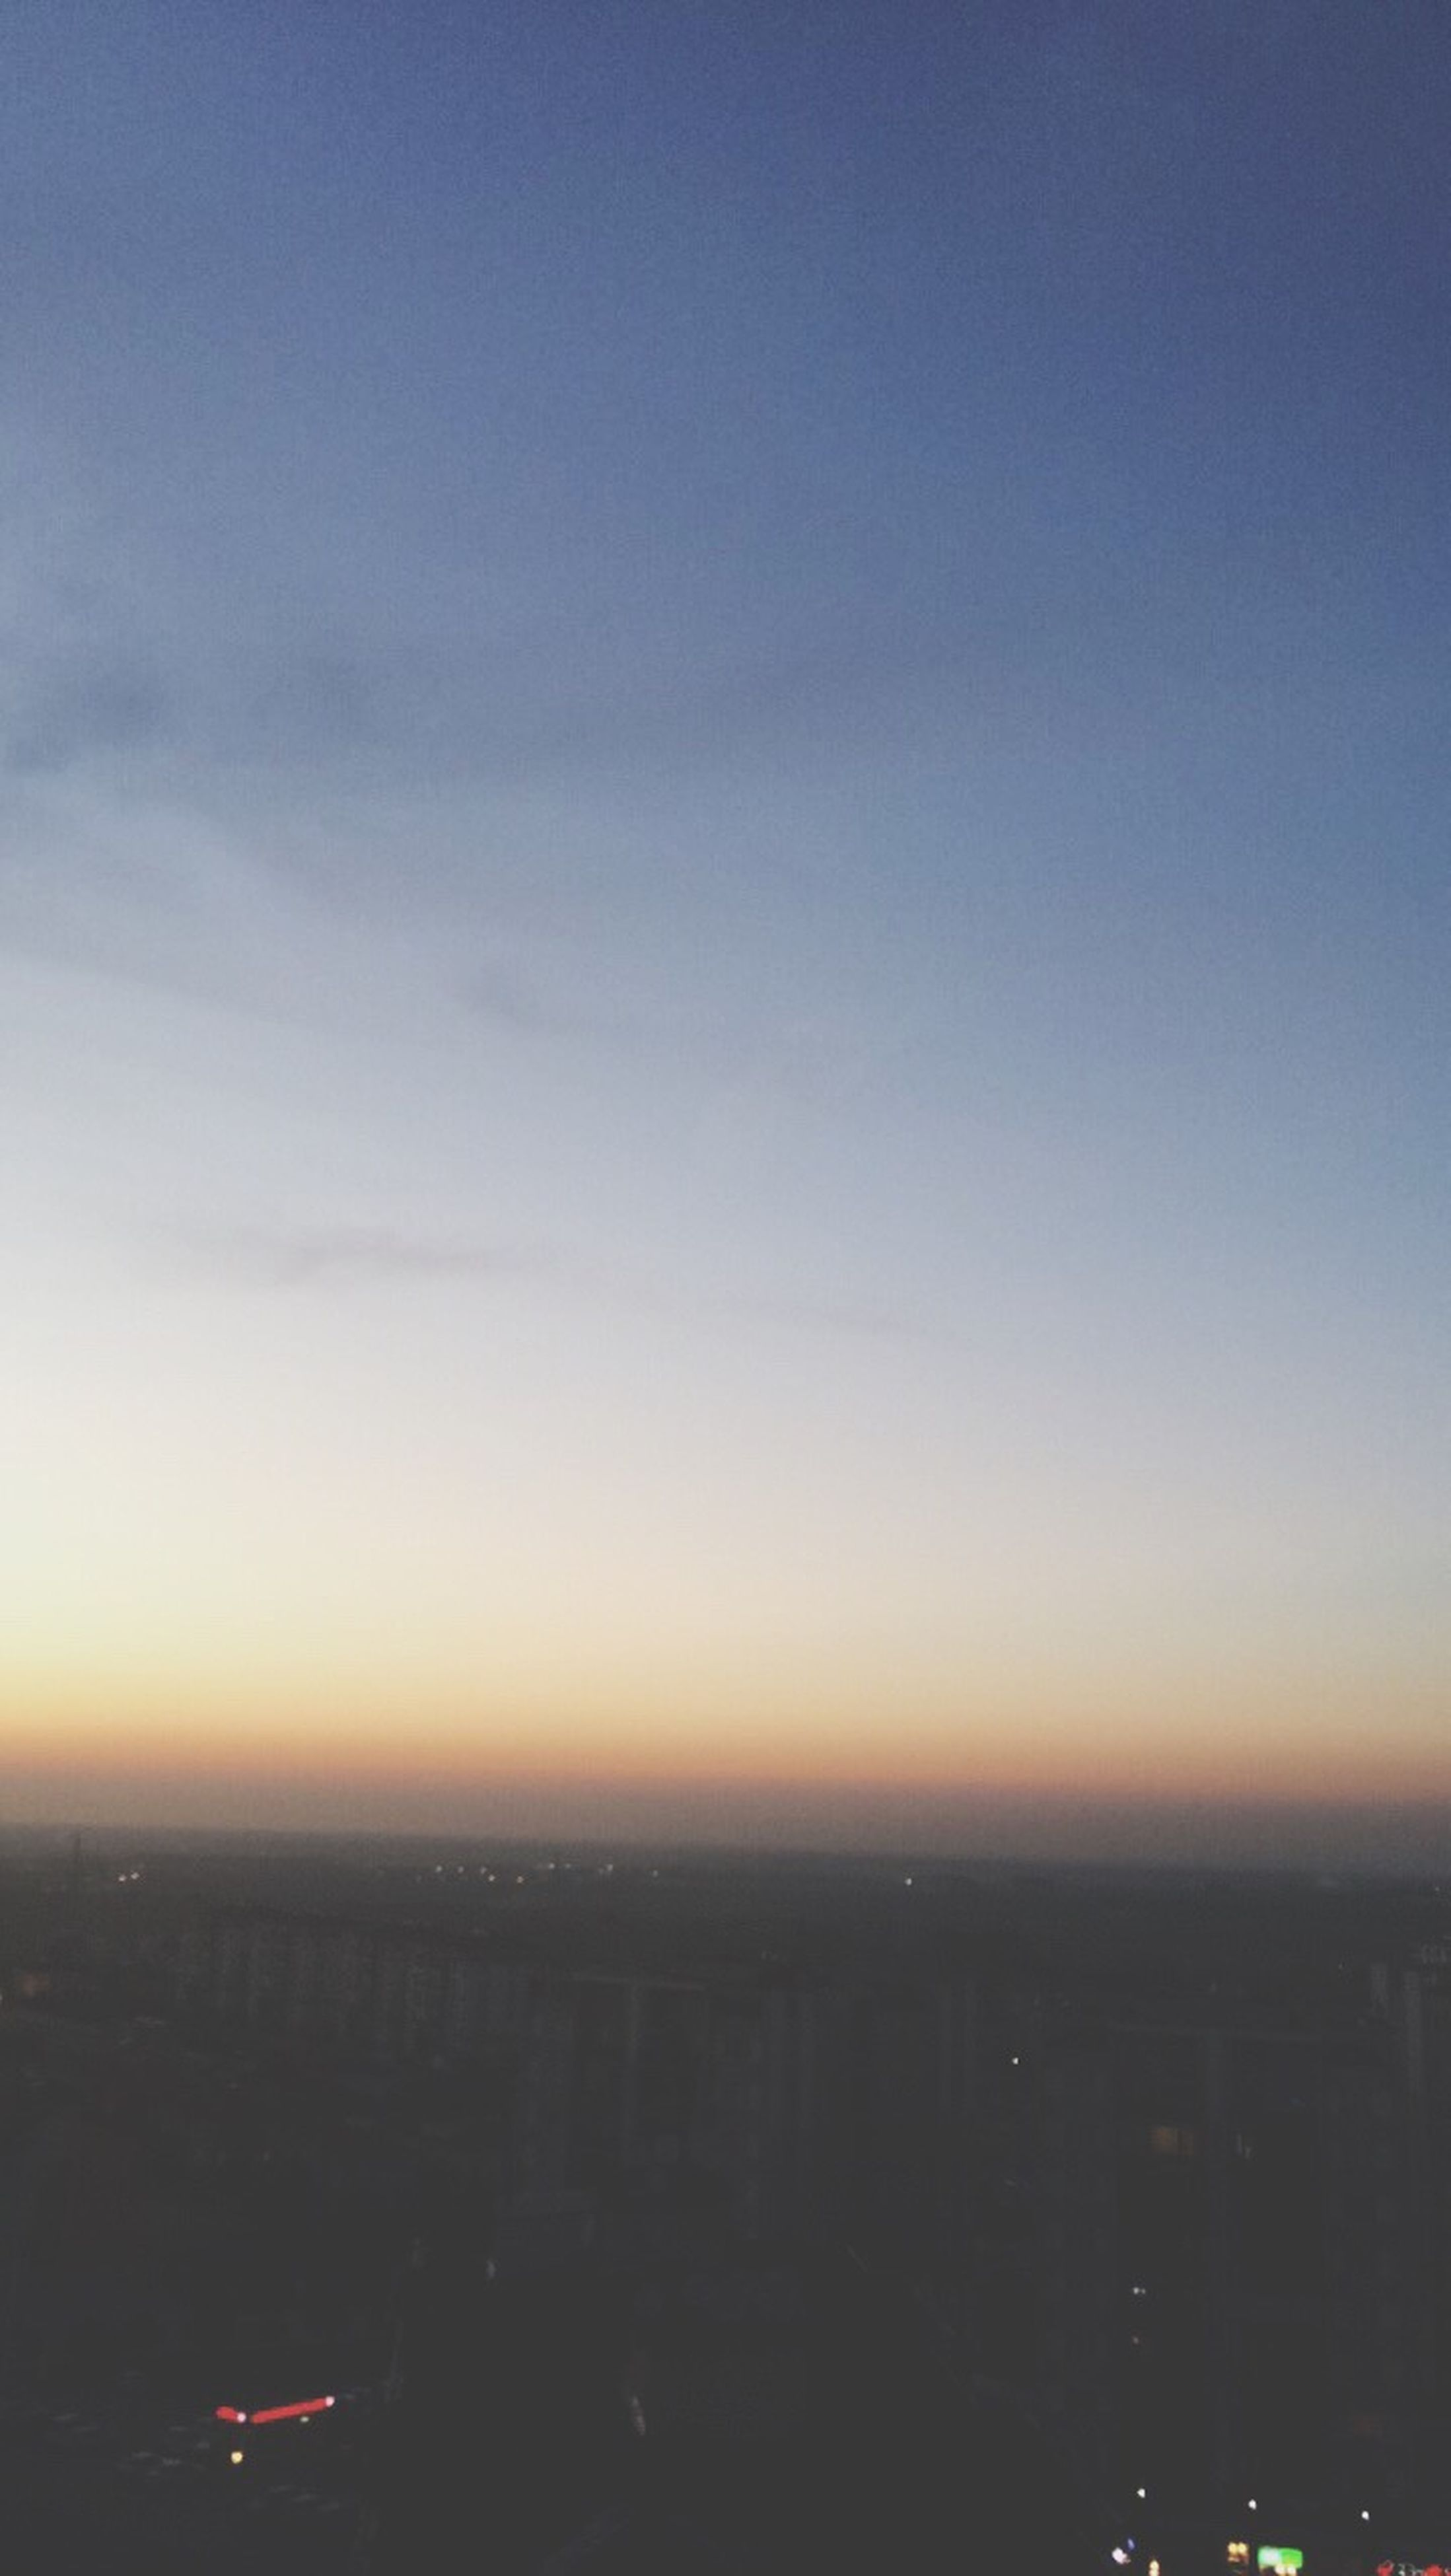 sunset, sky, nature, no people, city, outdoors, beauty in nature, architecture, building exterior, scenics, beach, water, cityscape, day